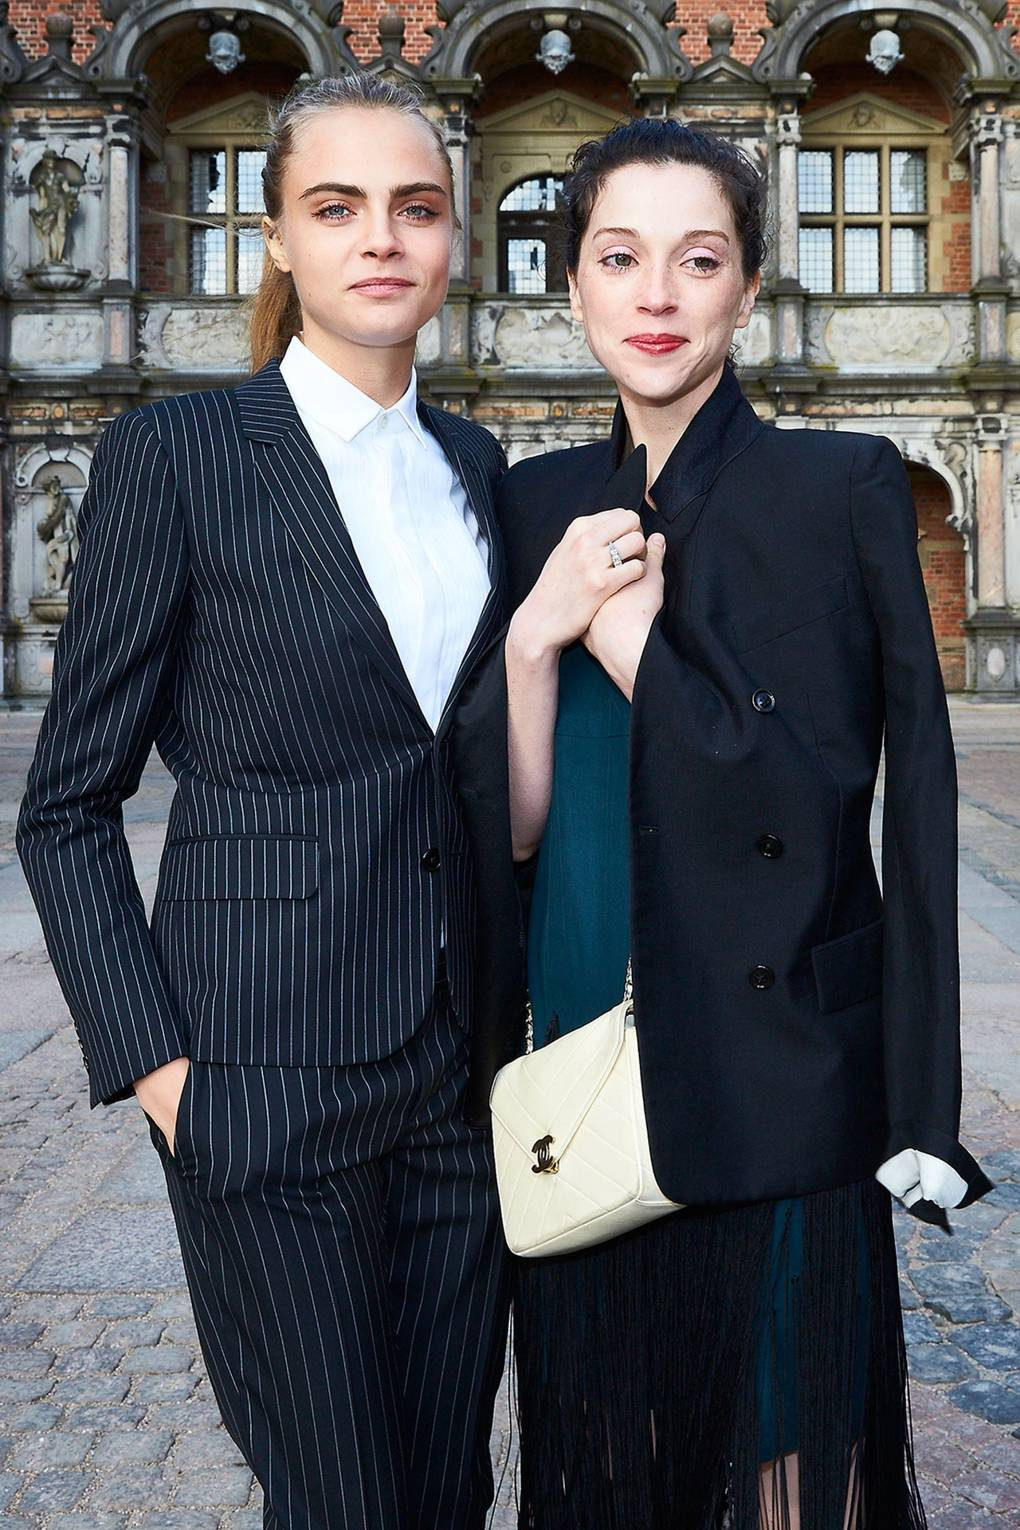 St vincent and cara delevingne dating list